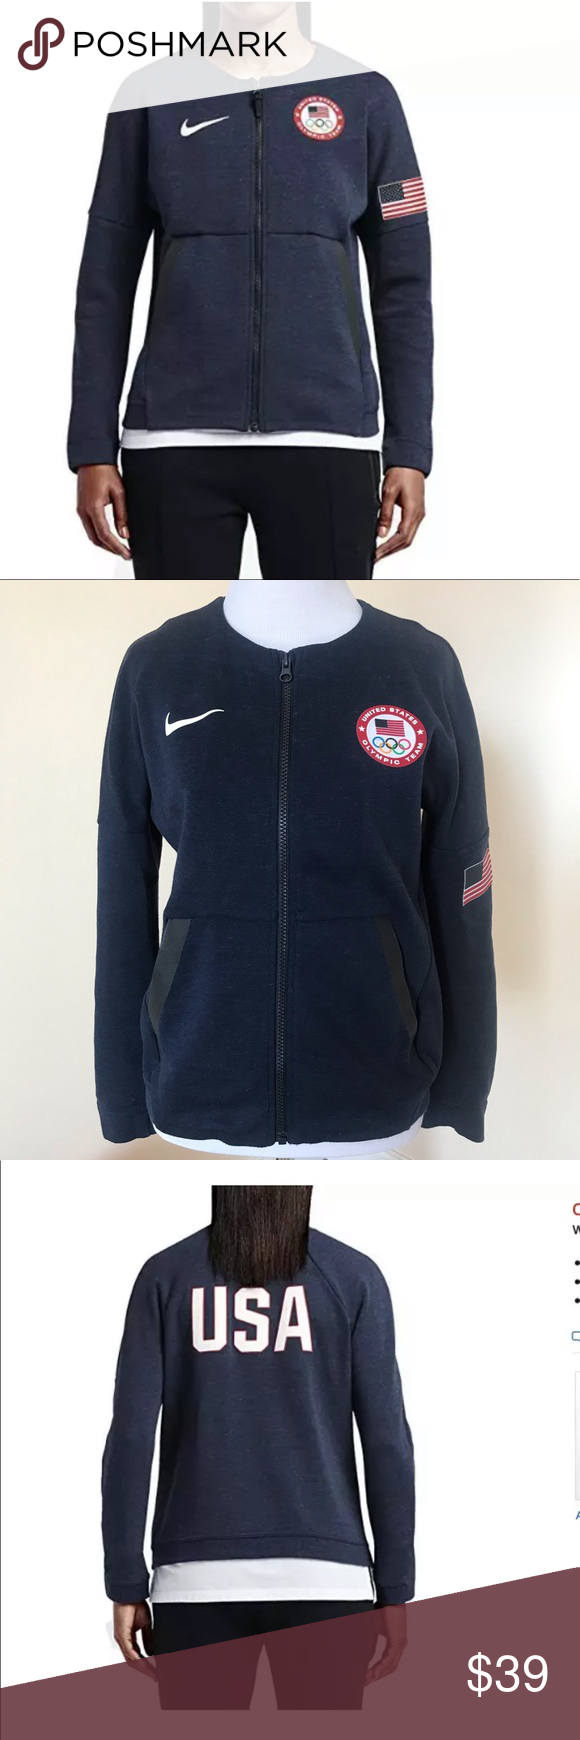 NWT Nike Tech Fleece USA Jacket EXCELLENT USED CONDITION